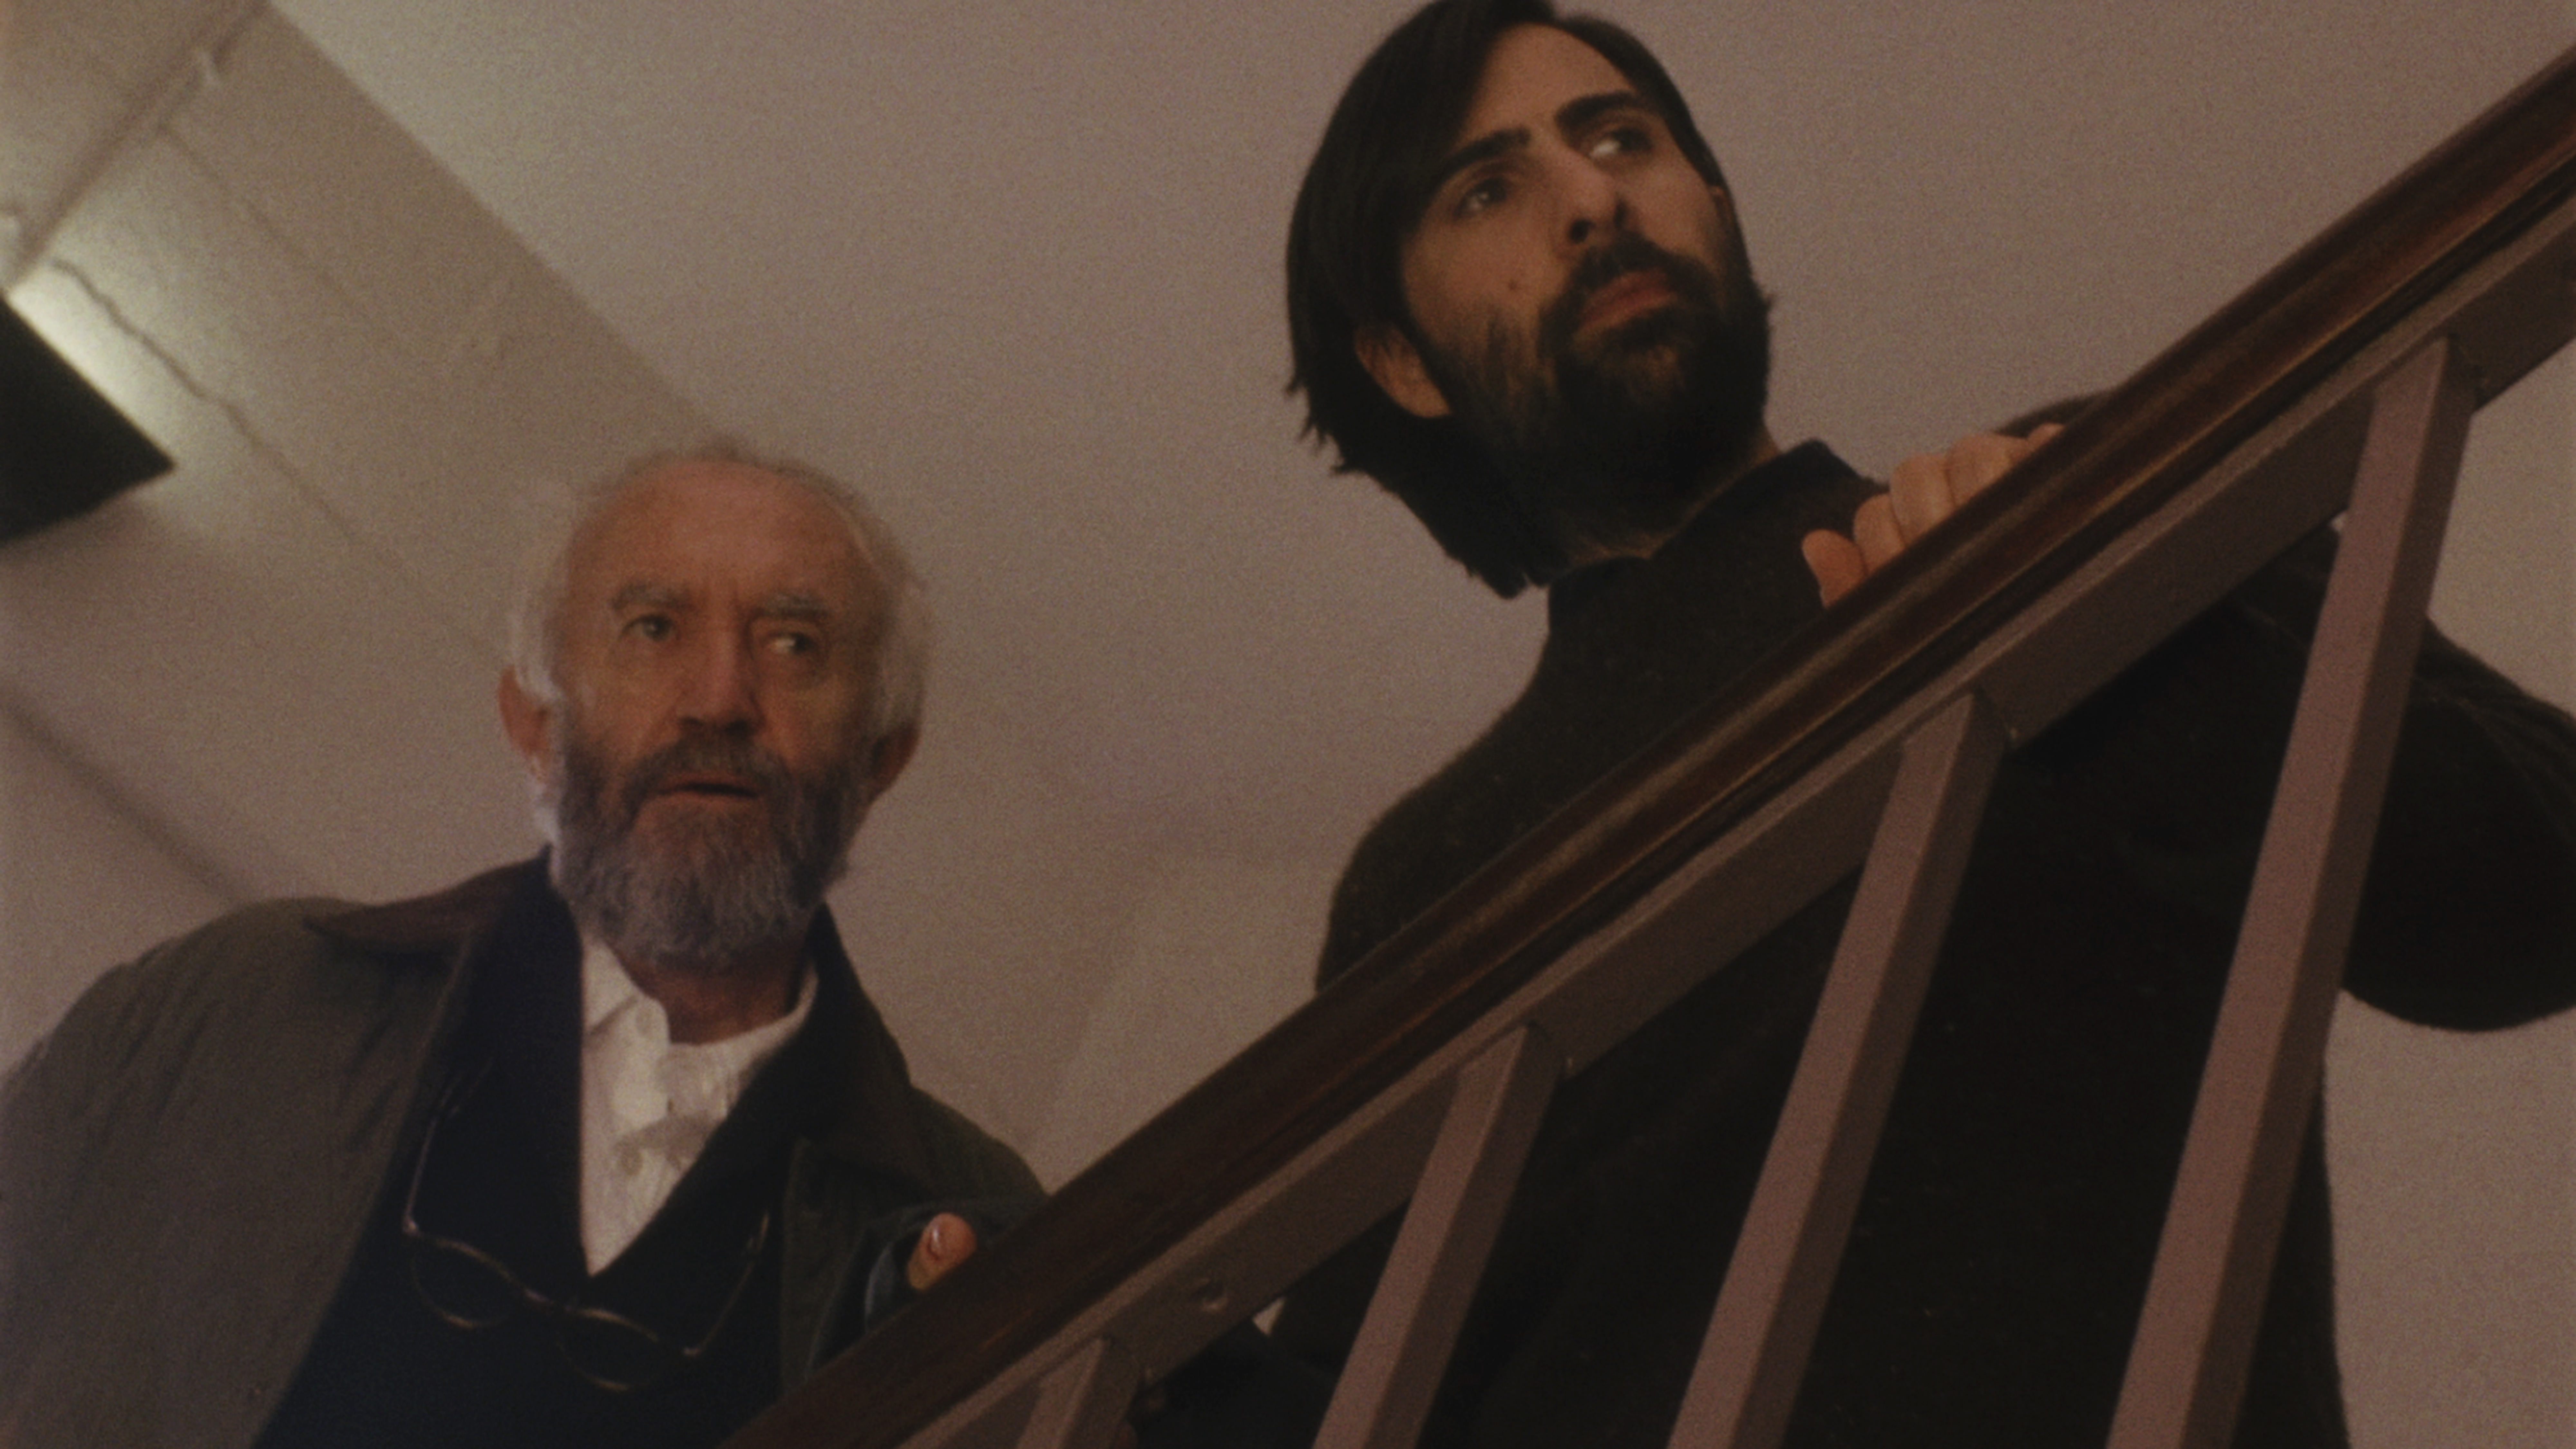 Listen-Up-Philip-Photo2-JasonSchwartzman-JonathanPryce